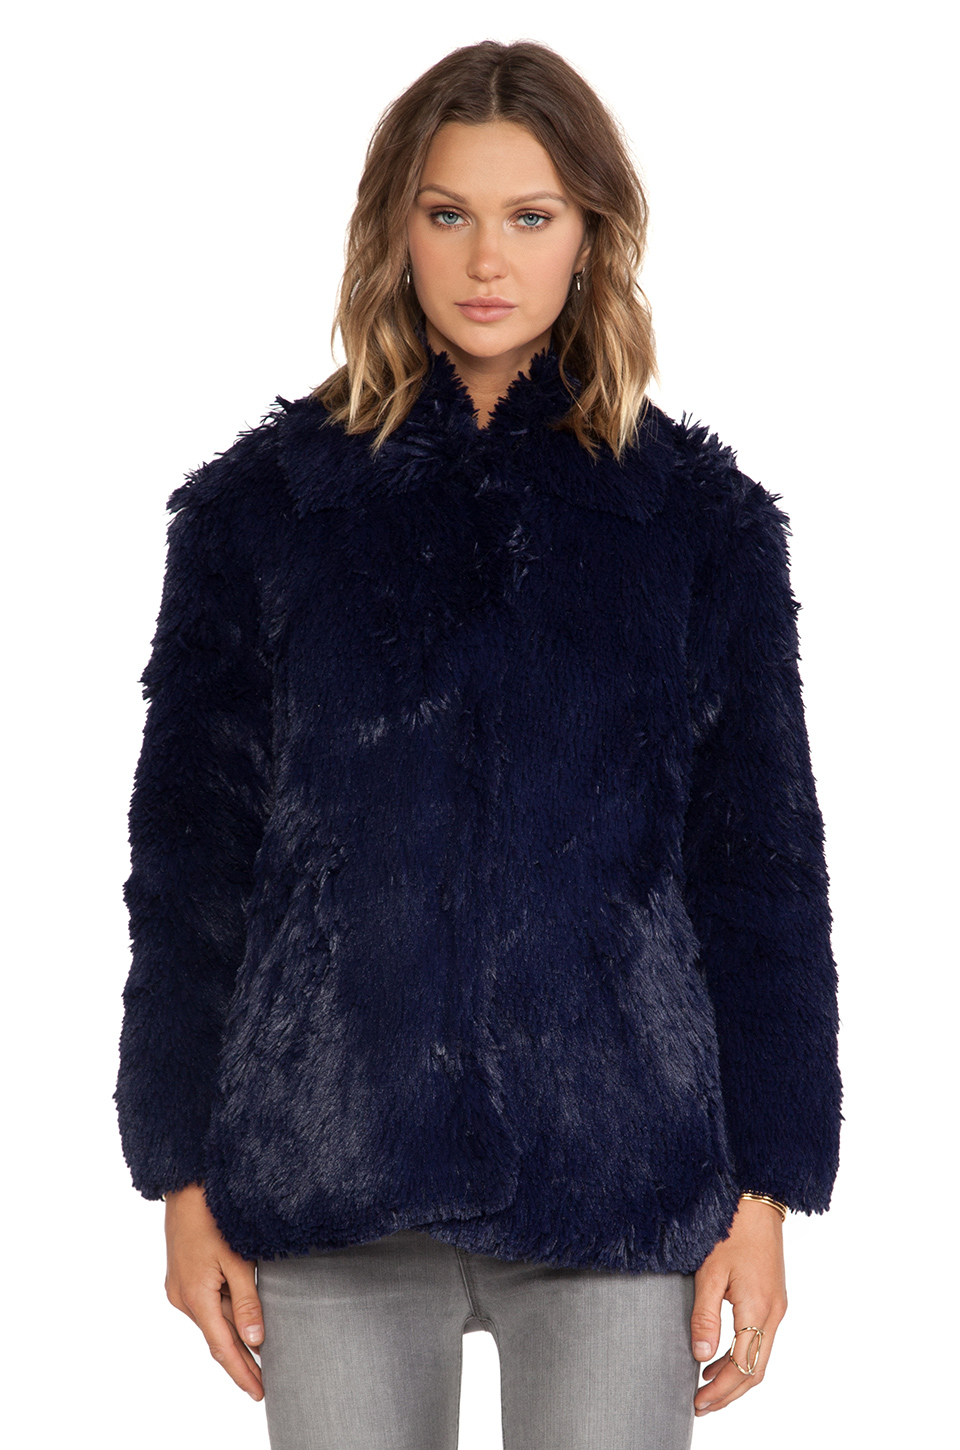 Shop Overstock Furs Online! The best in Mink, Sable, Rabbit, Fox, and more for LESS.